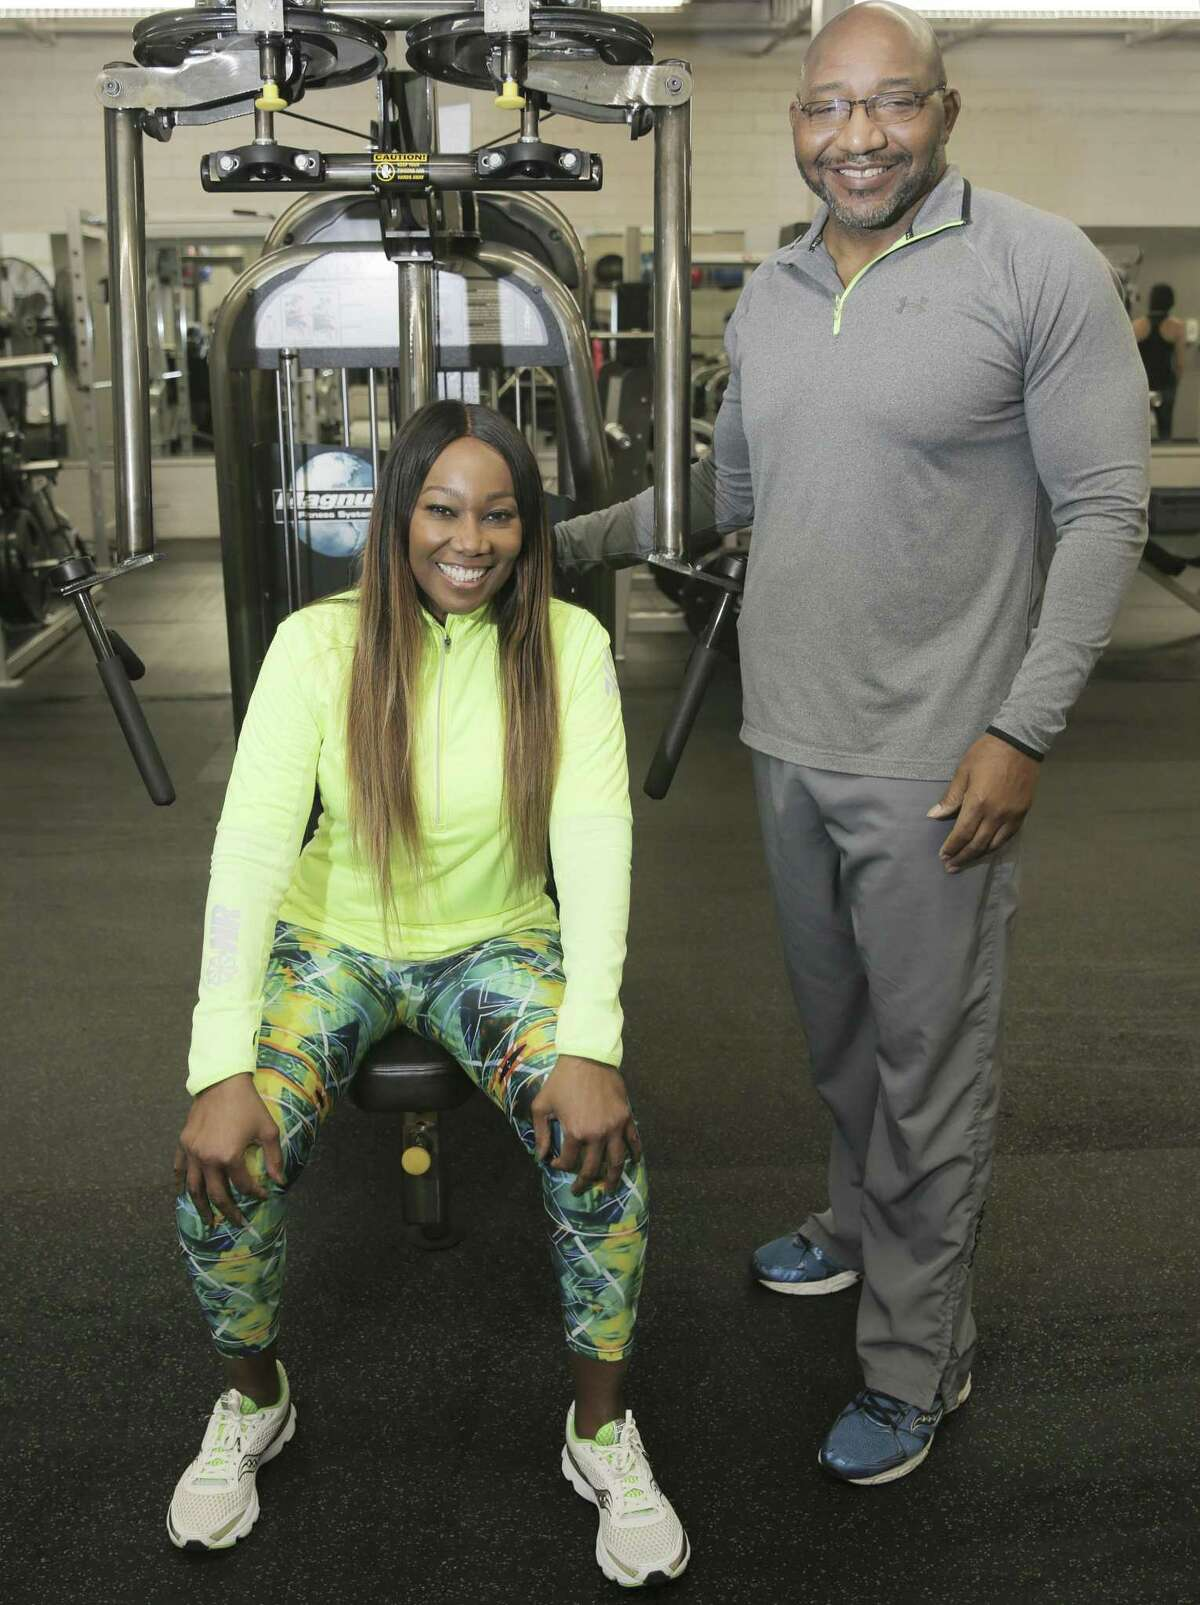 Grammy-award winning gospel singer Yolanda Adams with her trainer Terrence Cooks. They have been working out together for 15 years.